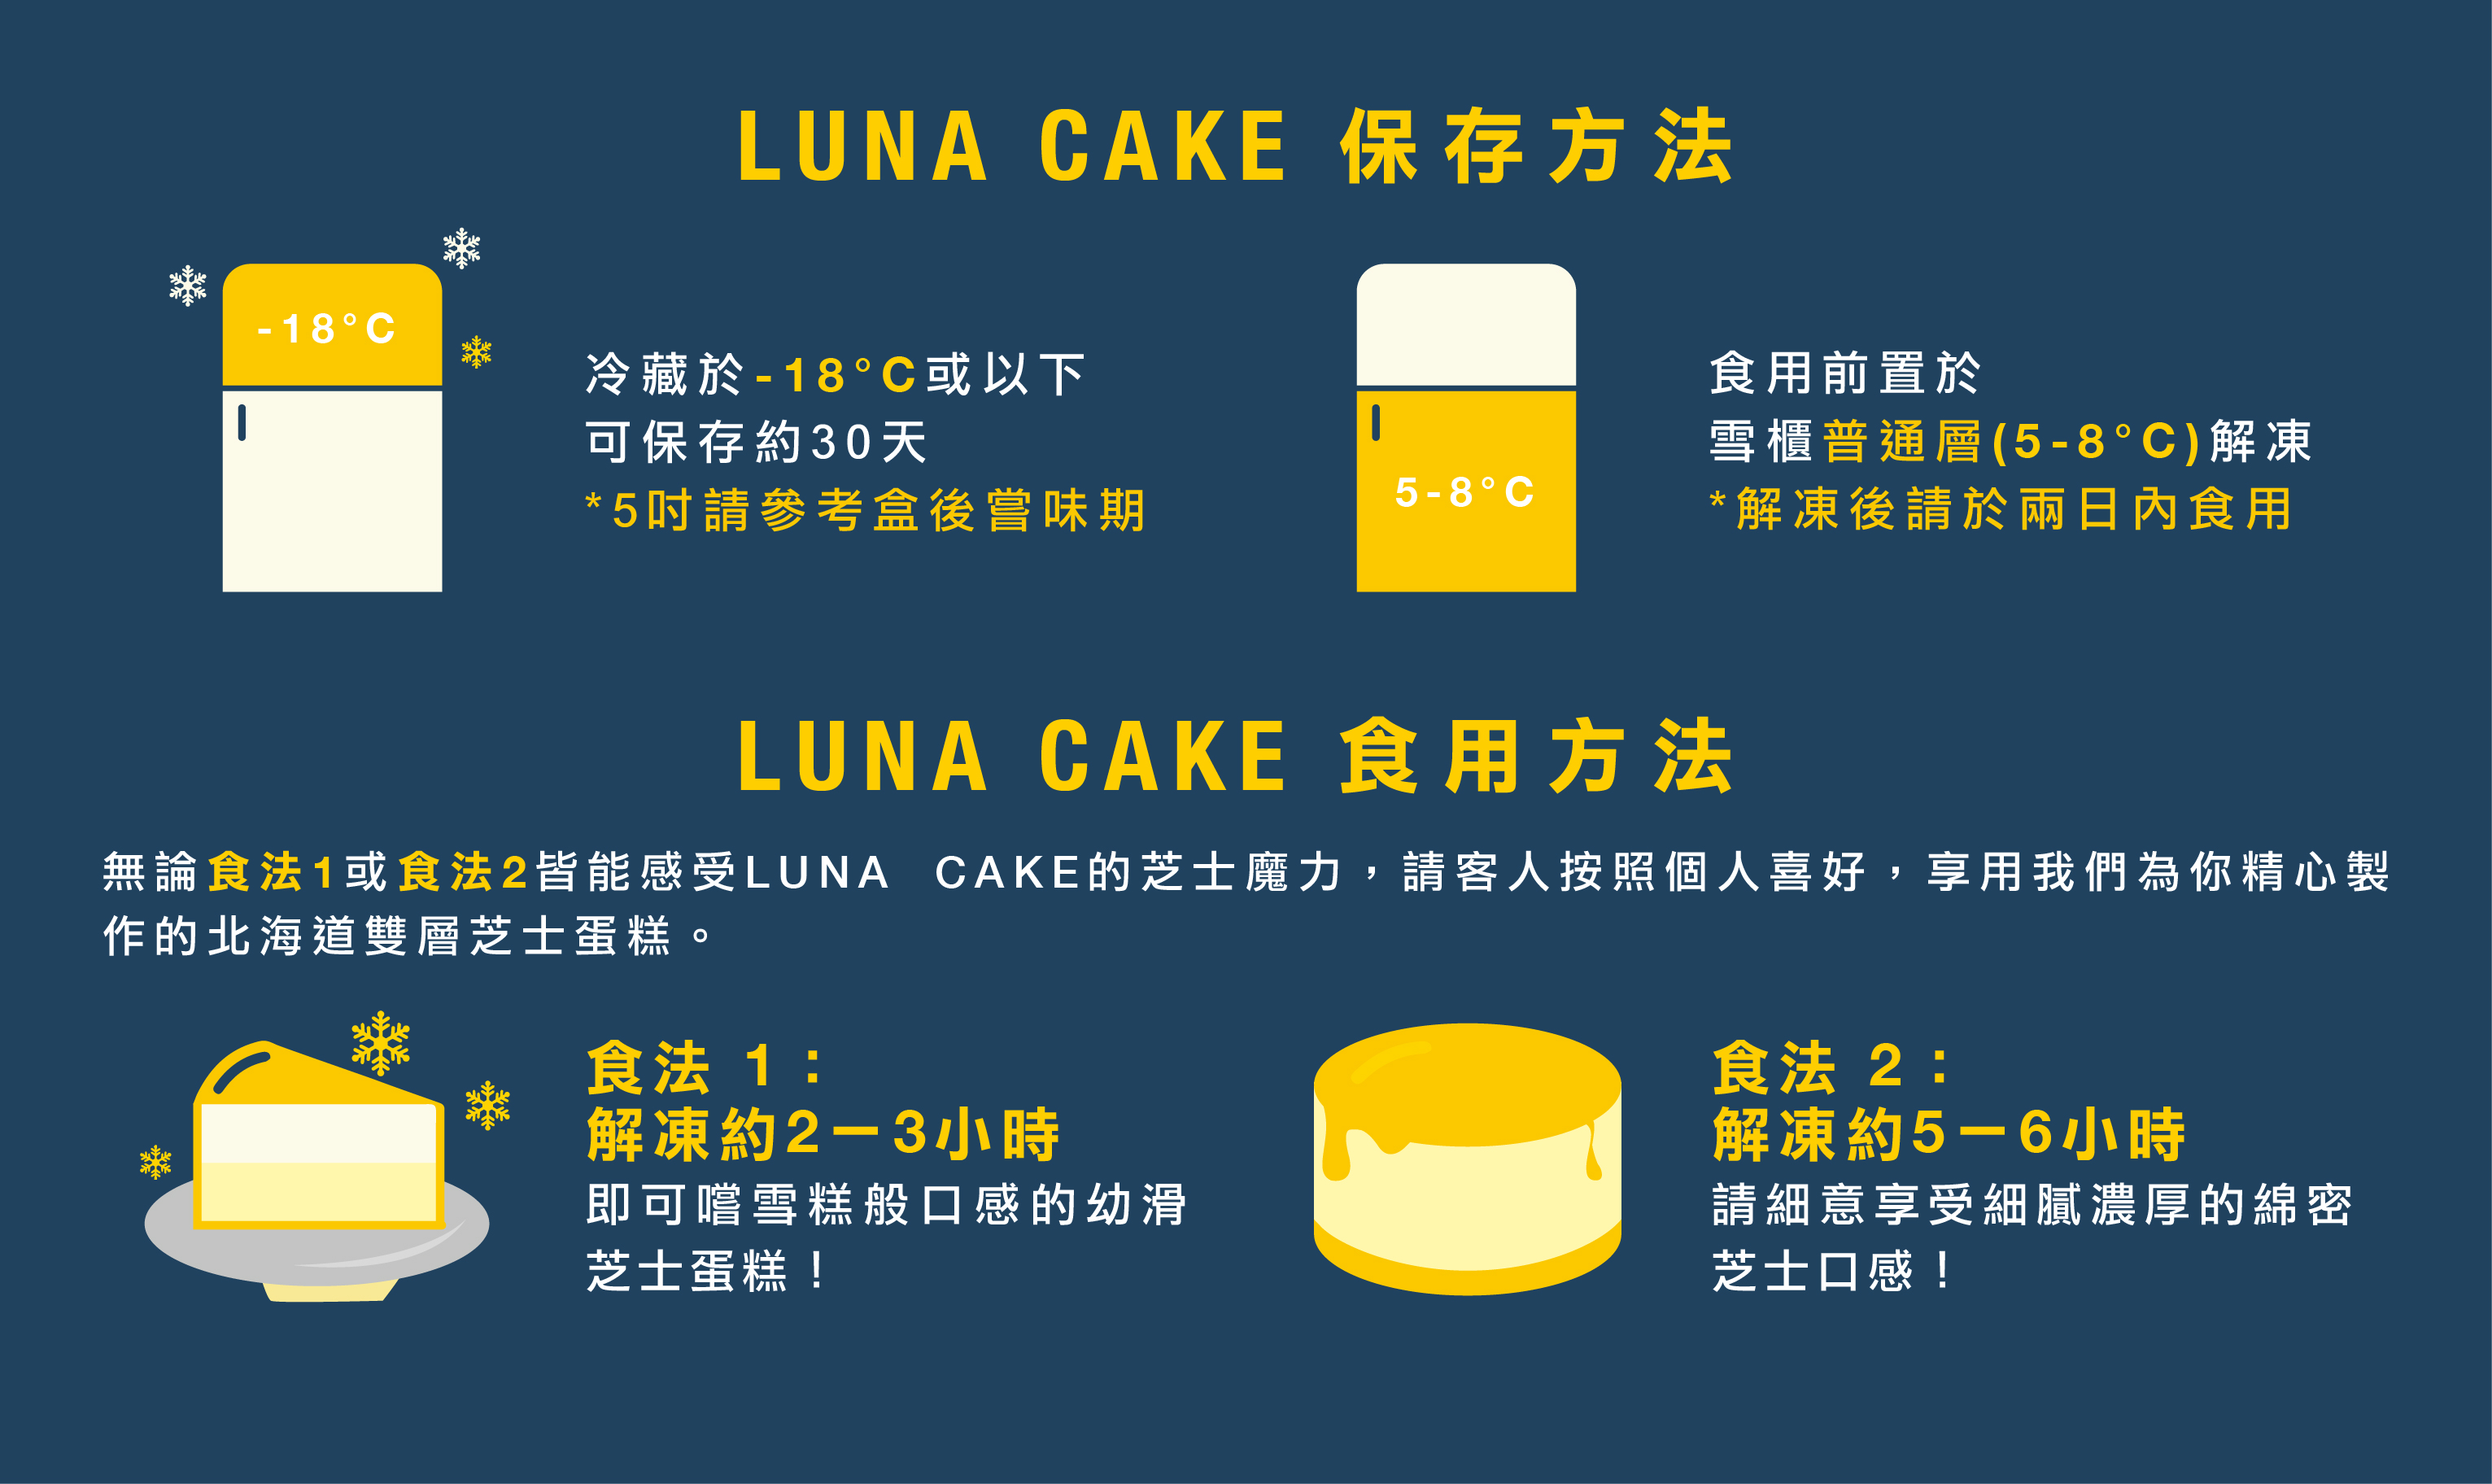 lunacake-website-method-20201019-03-aw-01.jpg